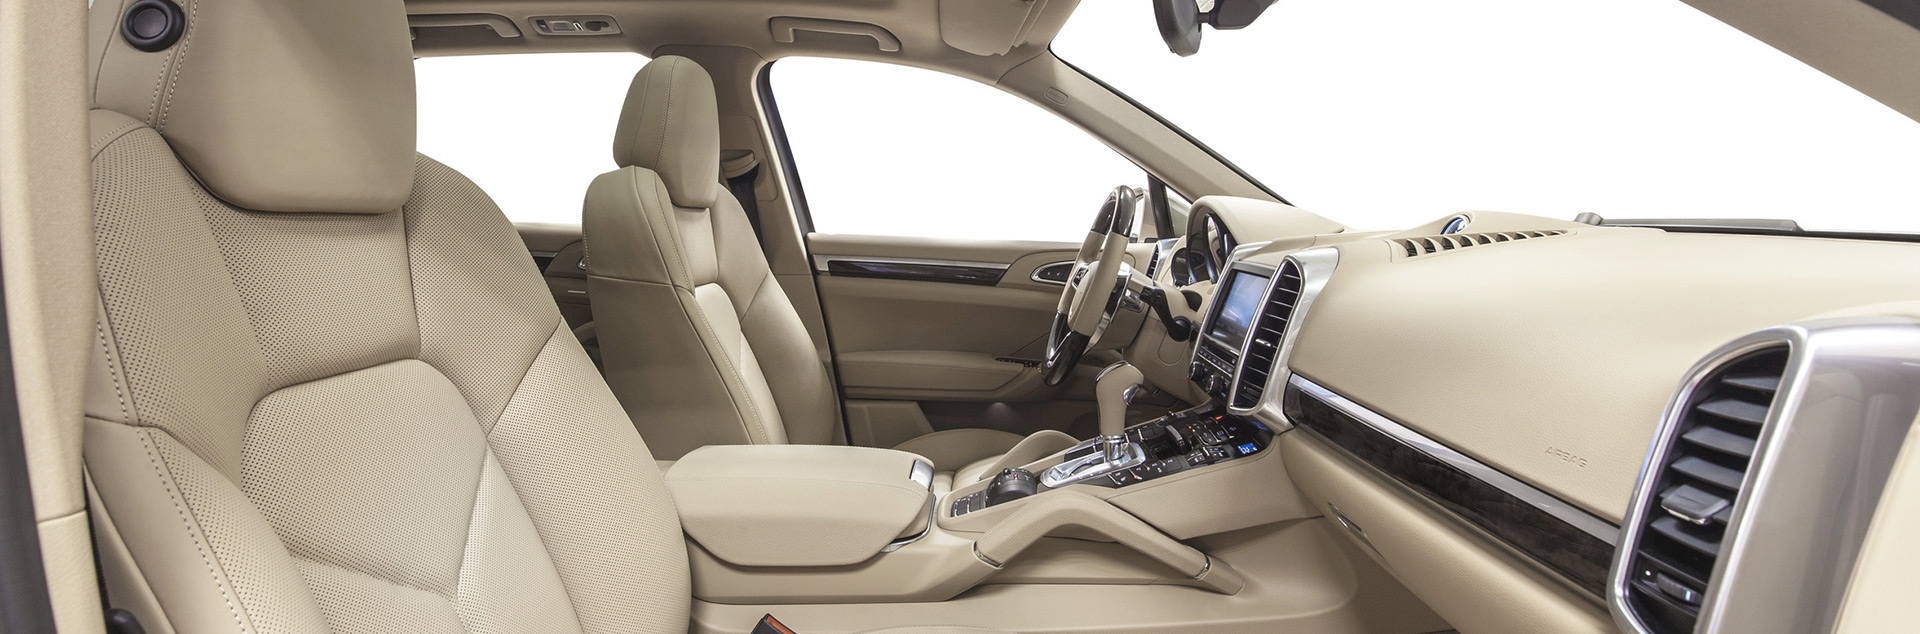 Automotive Interieur Komponenten